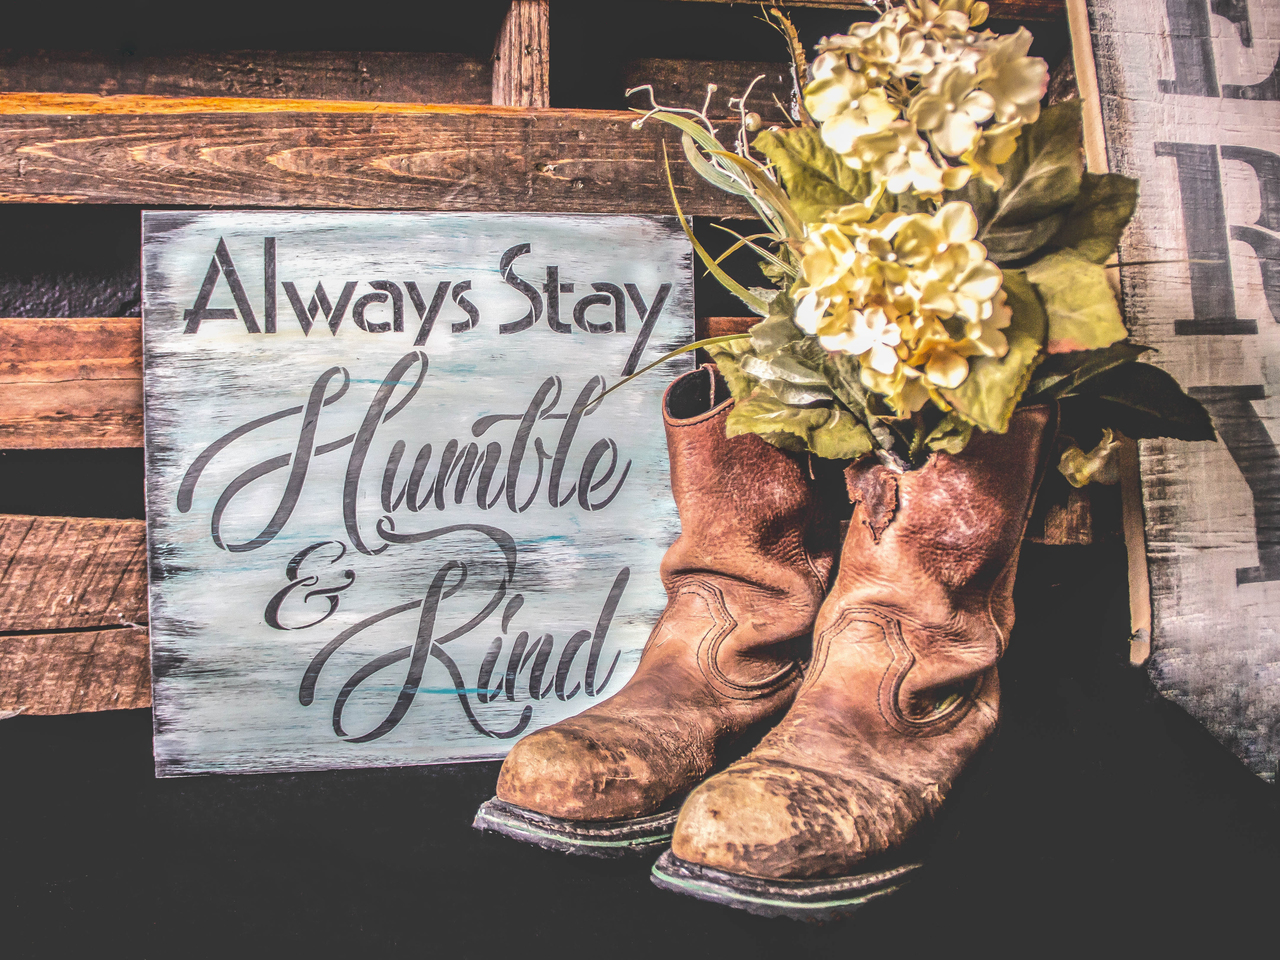 Always Stay Humble and Kind Stencil Square Design by StudioR12 Reusable Word Template for Painting on Wood Signs Inspirational DIY Farmhouse Journaling Chalk Mixed Media Select Size